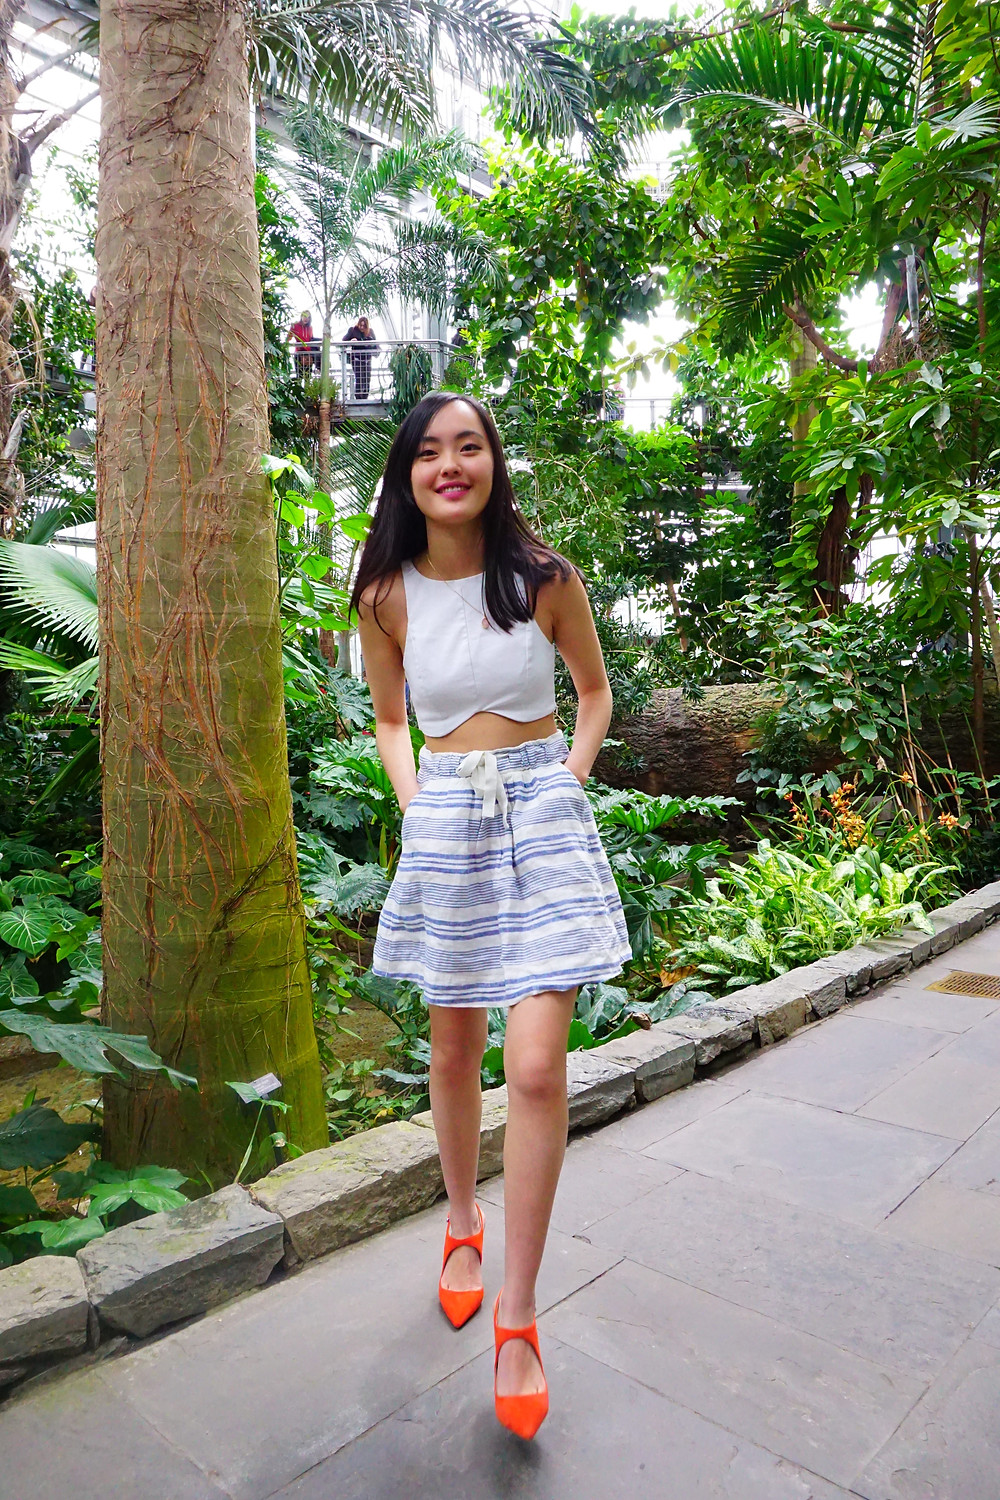 Full length outfit at the United States Botanical Gardens